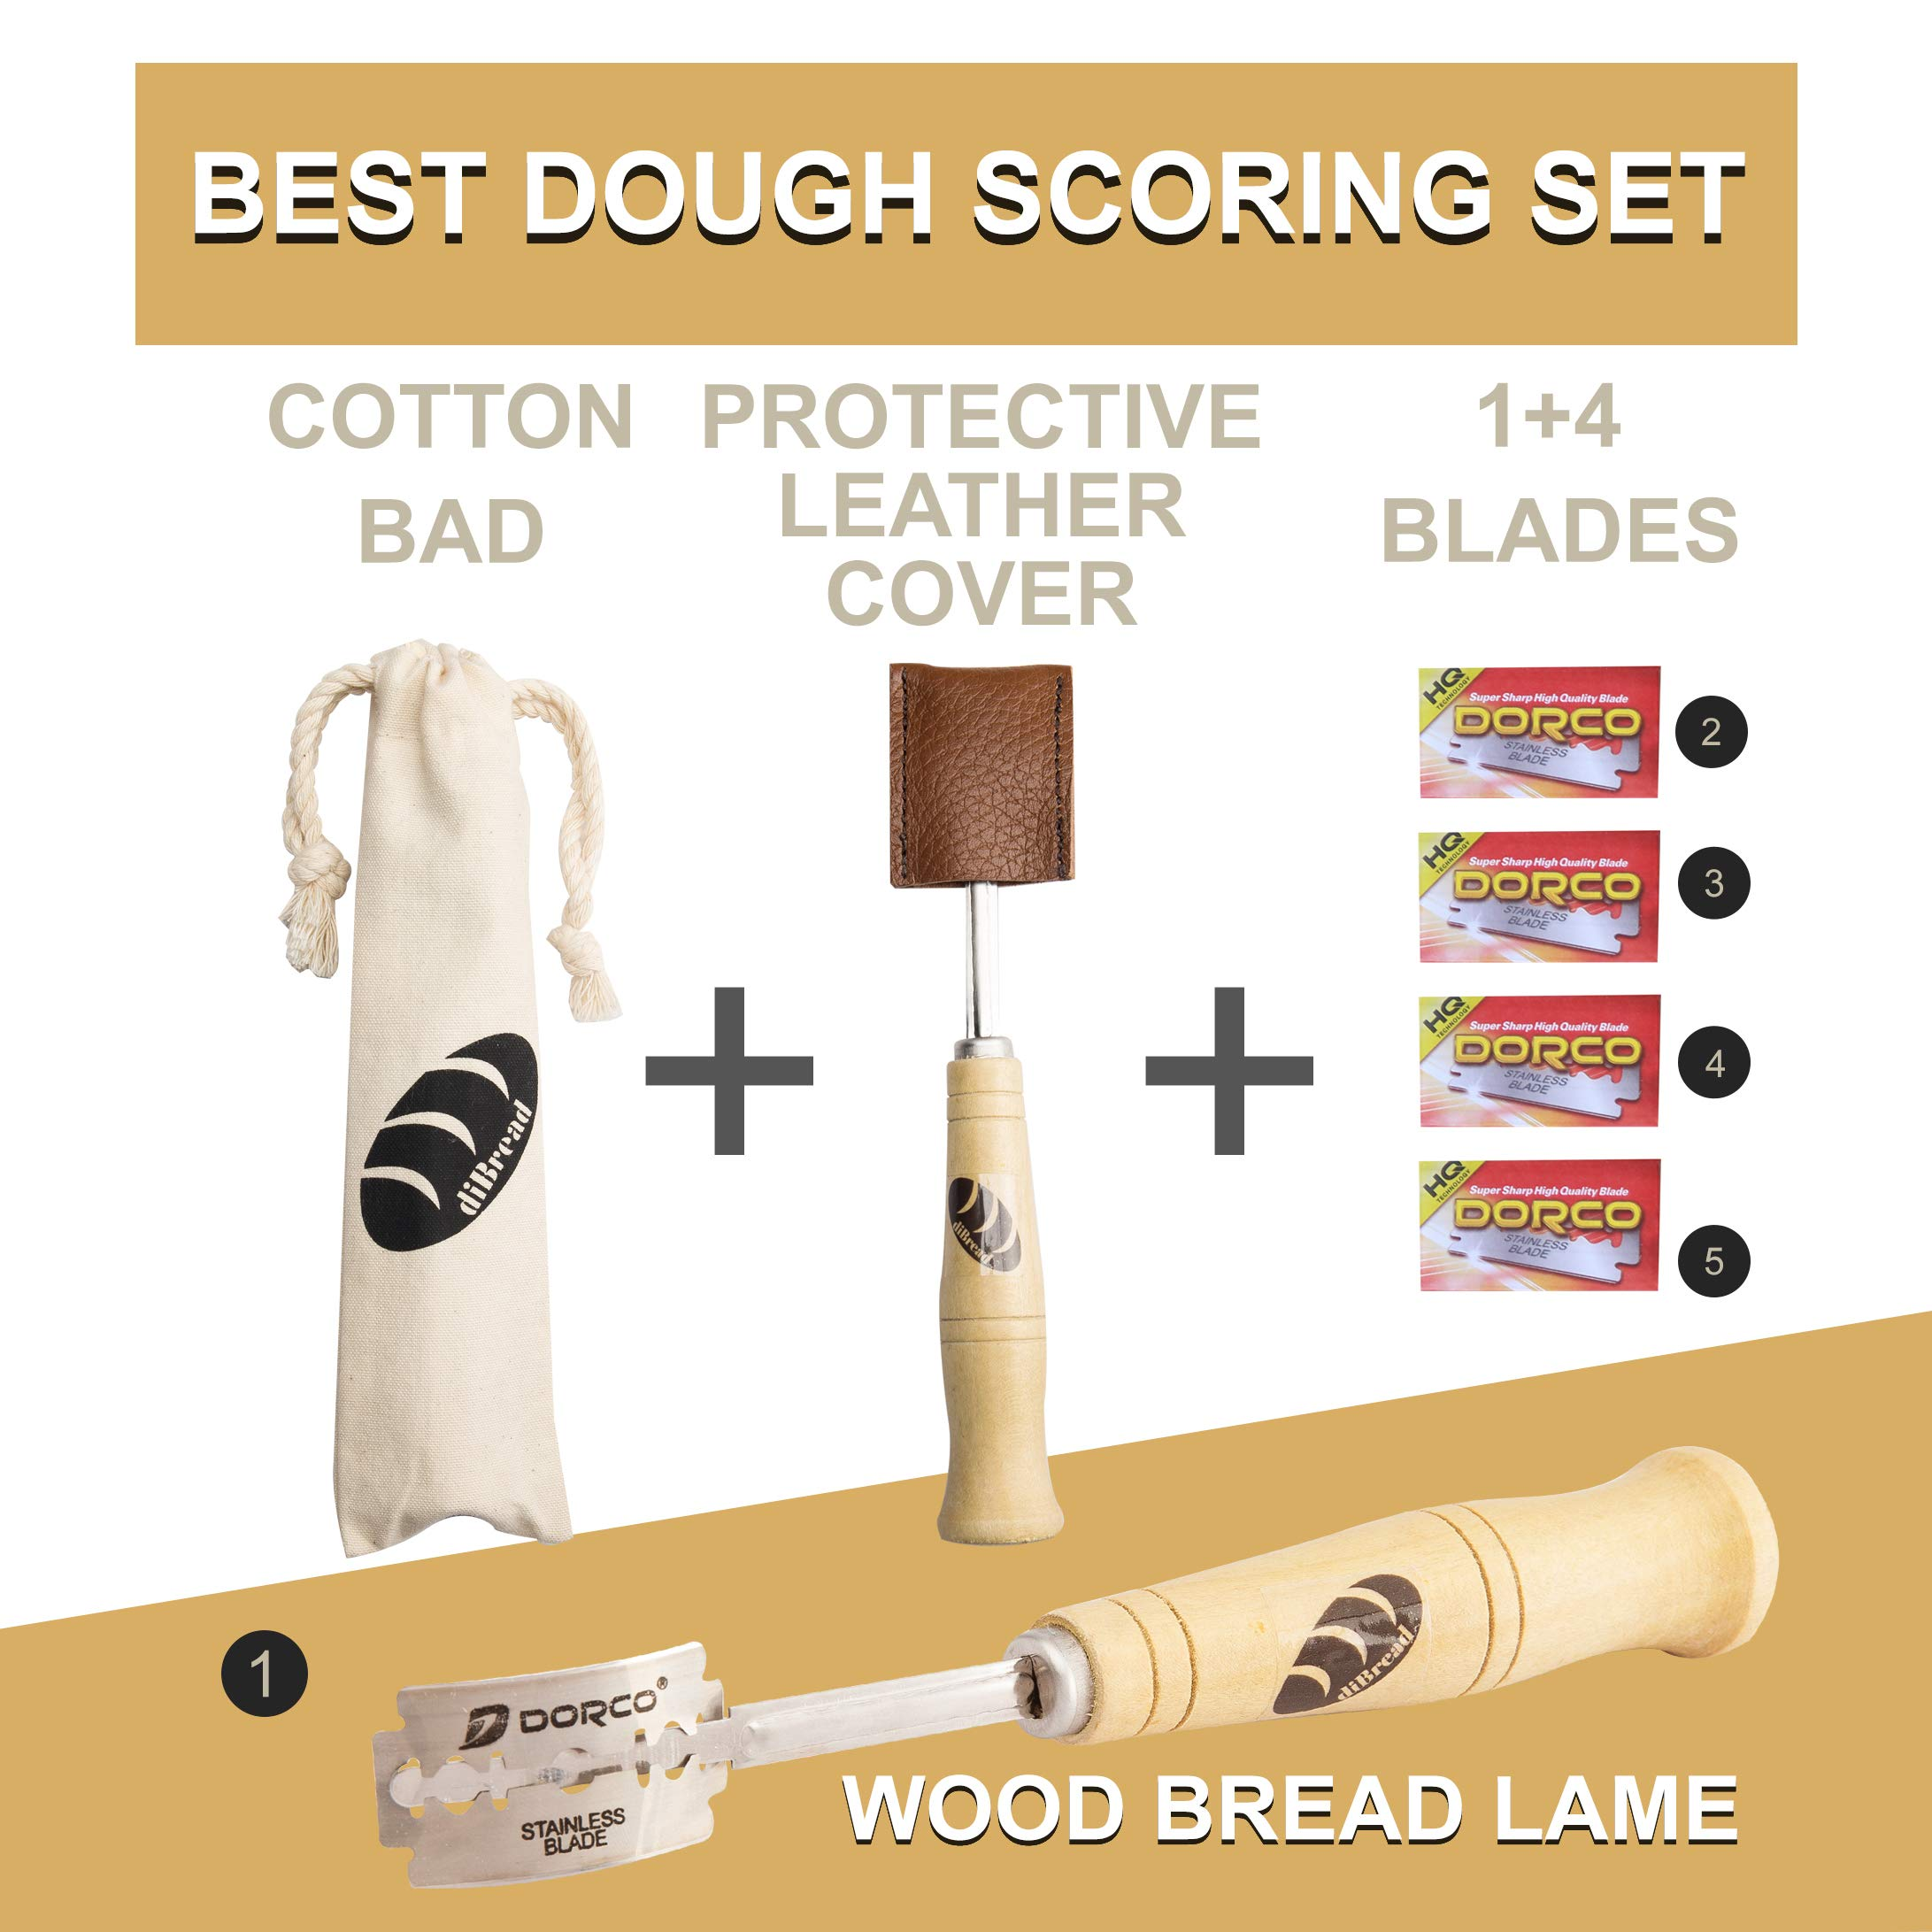 DiBread Bread Scoring Lame | Dough Scoring Tool | Premium Hand Crafted Bread Lame with 5 Blades Included | with Authentic Leather Protective Cover and Cotton Bag by by DiBread (Image #4)